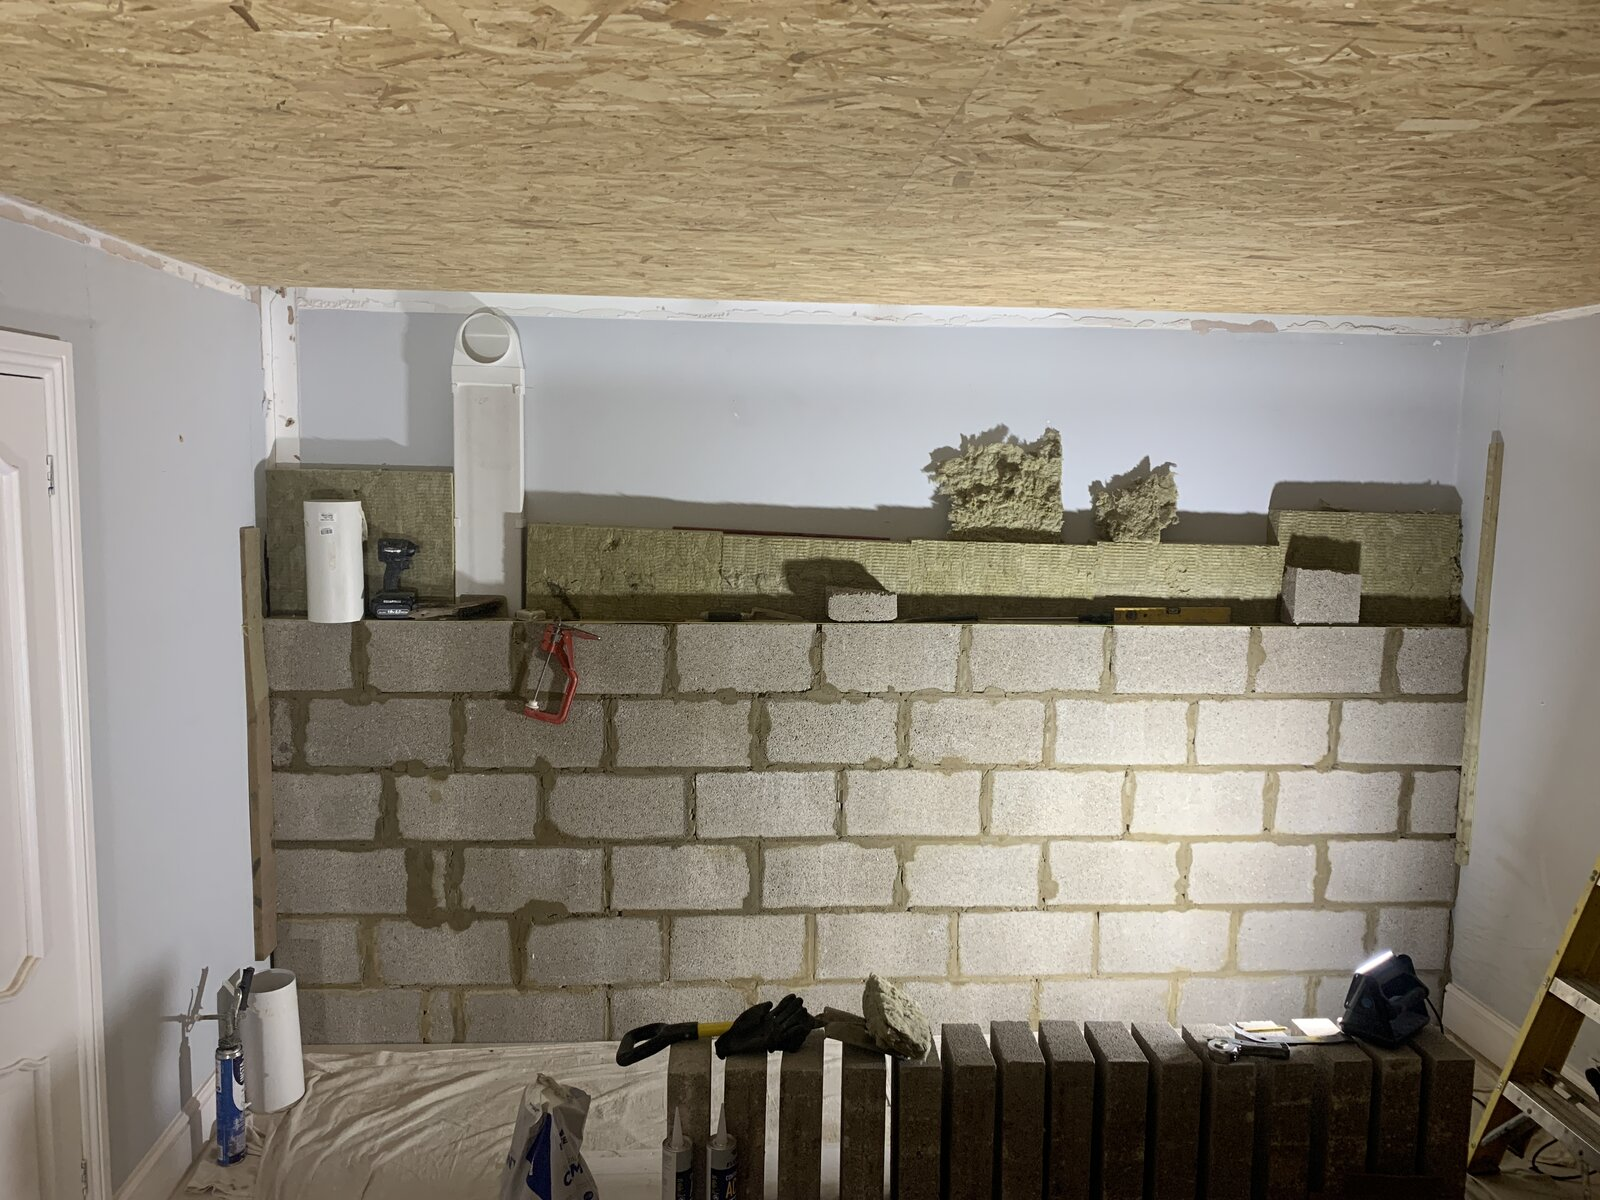 New blockwork wall and vent duct